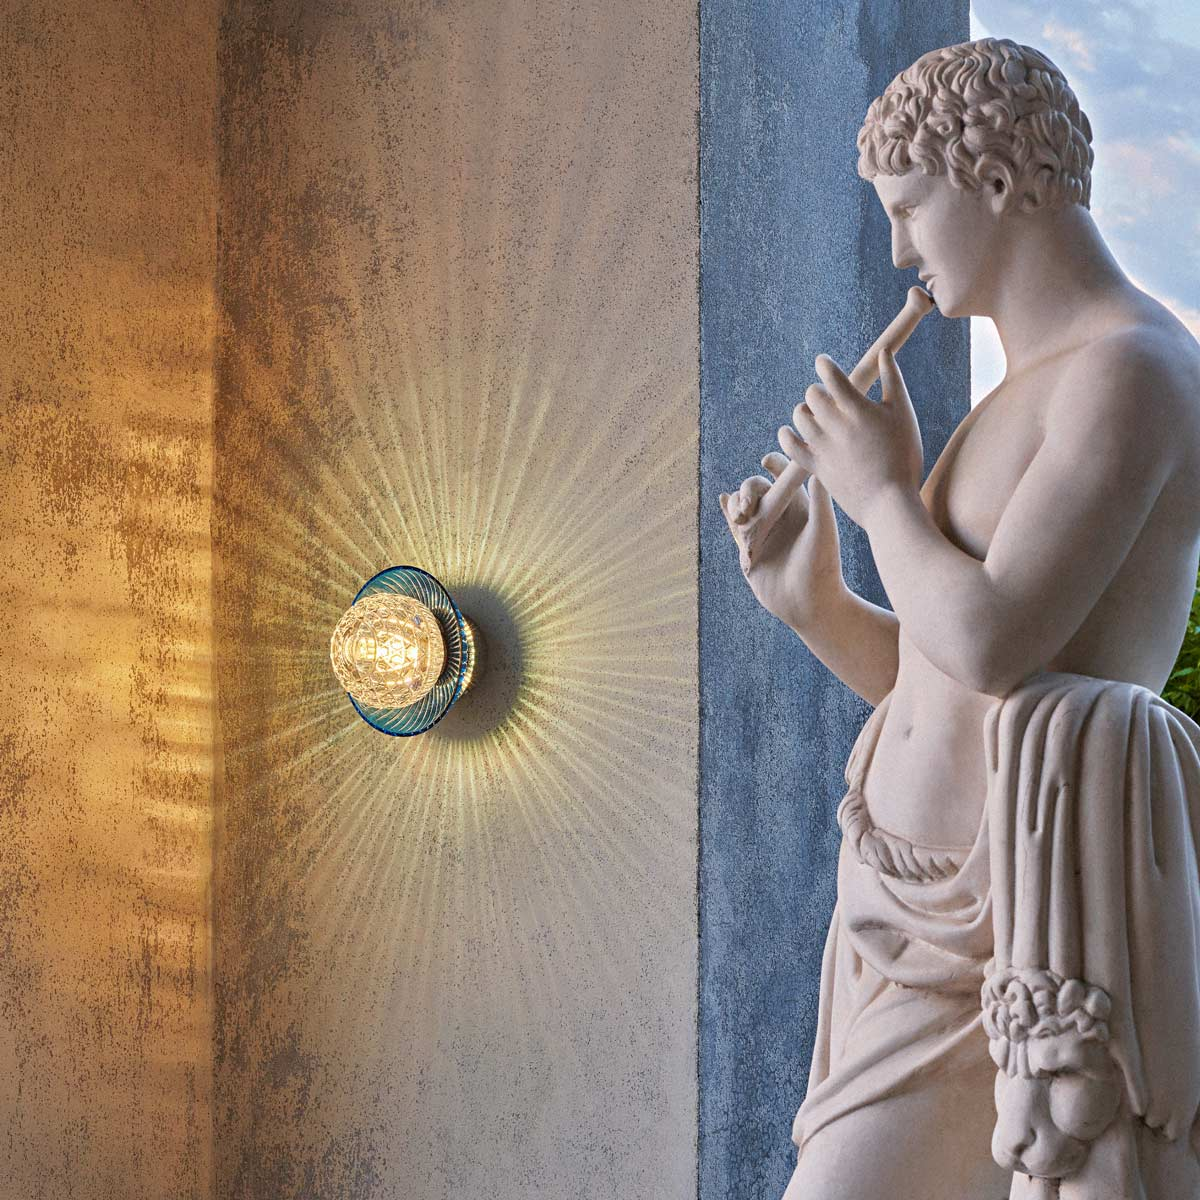 Discover the recently launched Royal sconces from Saint-Louis.